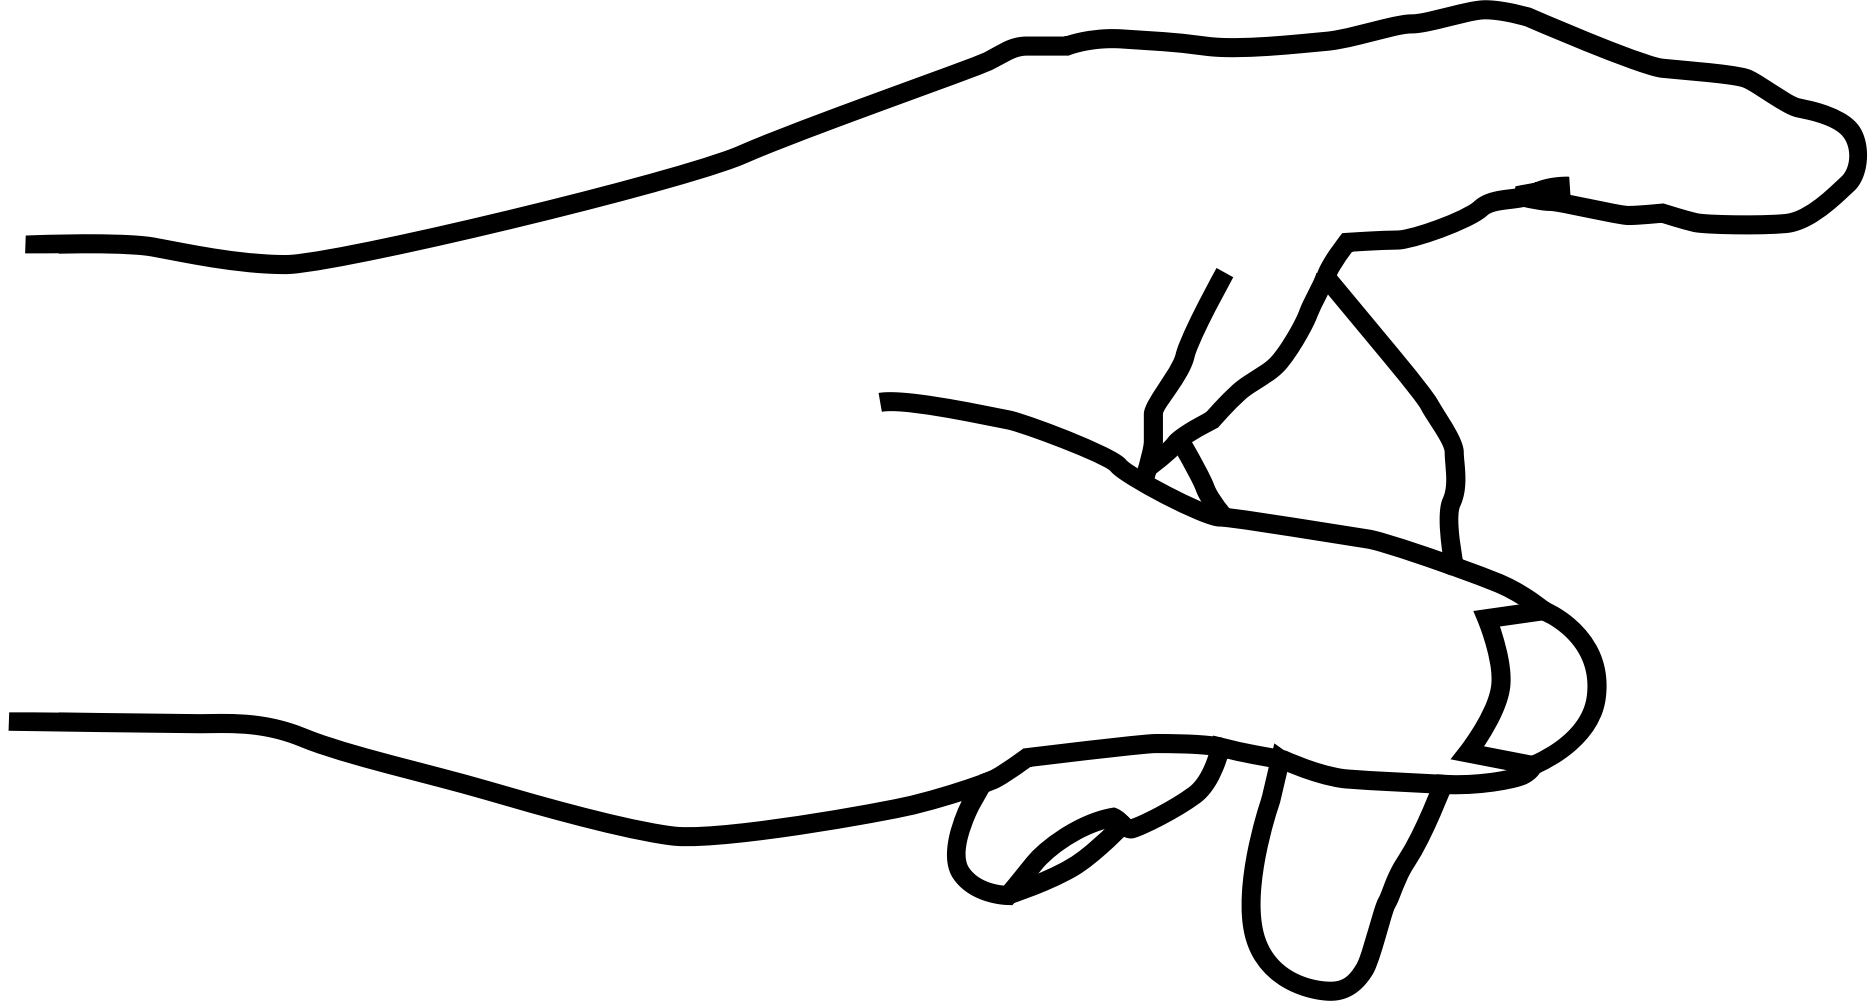 Hand outline pencil and. Fingers clipart six finger